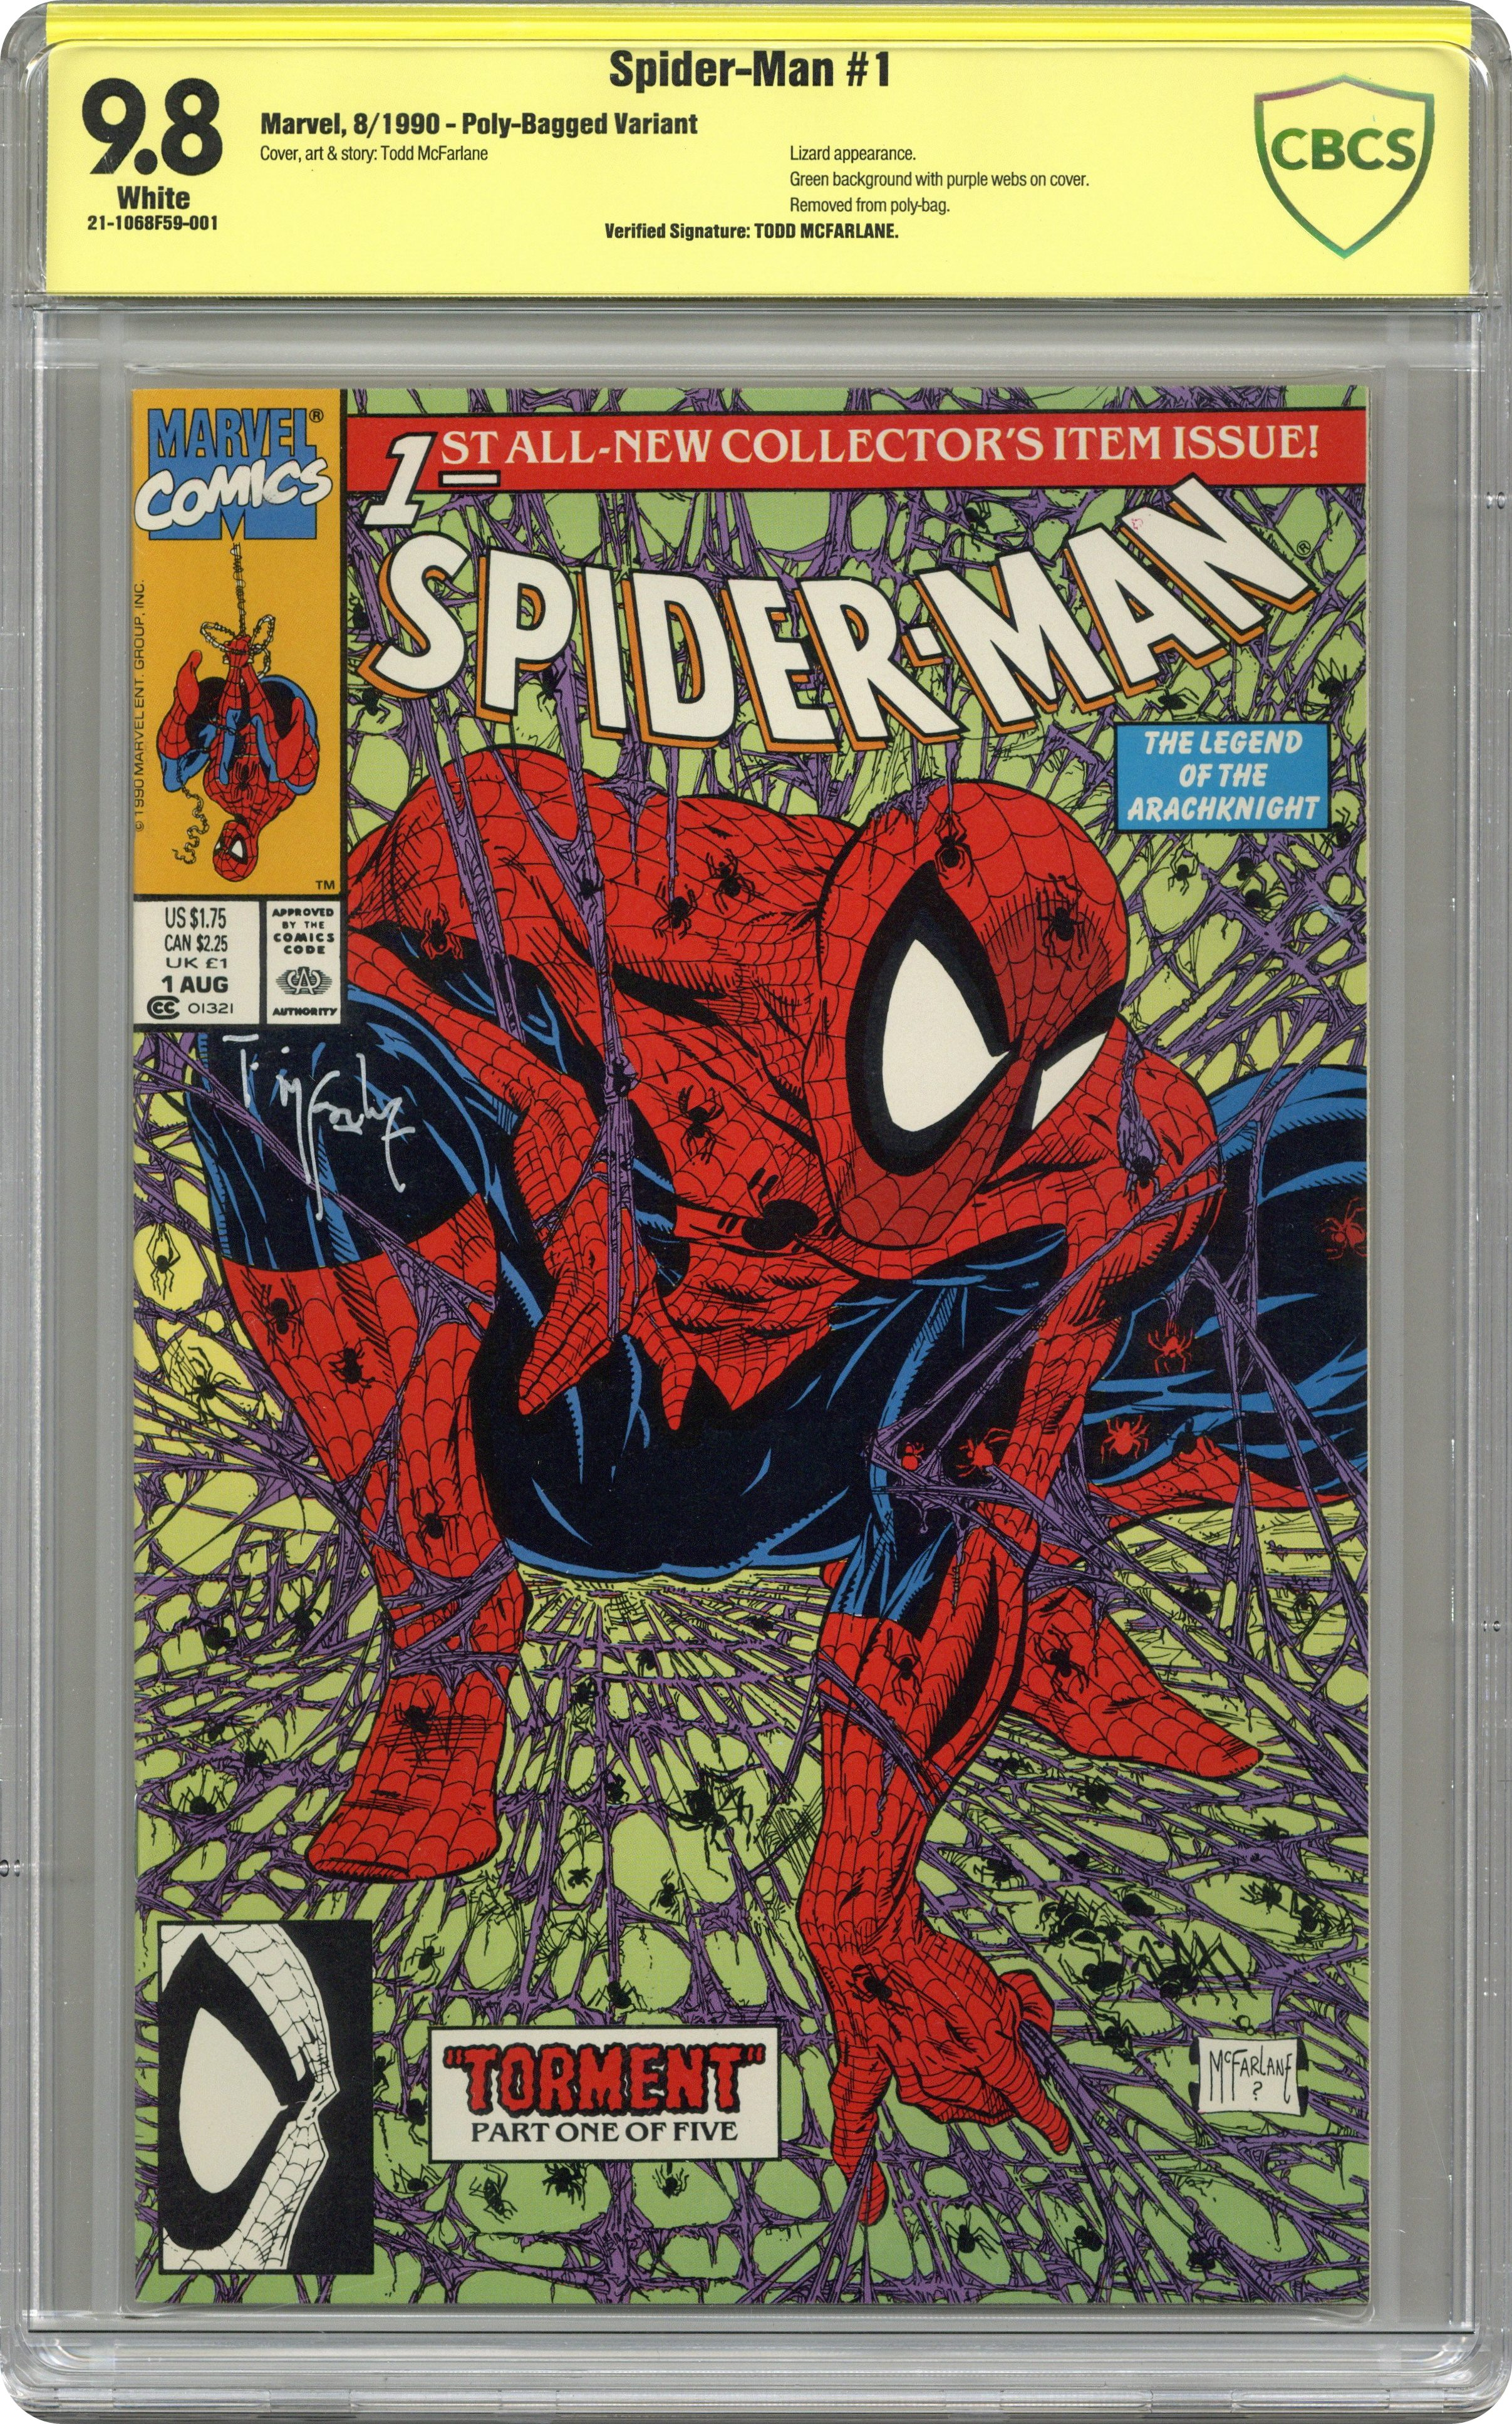 Marvel Spider-man #4 Torment Signed by Stan Lee w//COA Todd McFarlane Cover